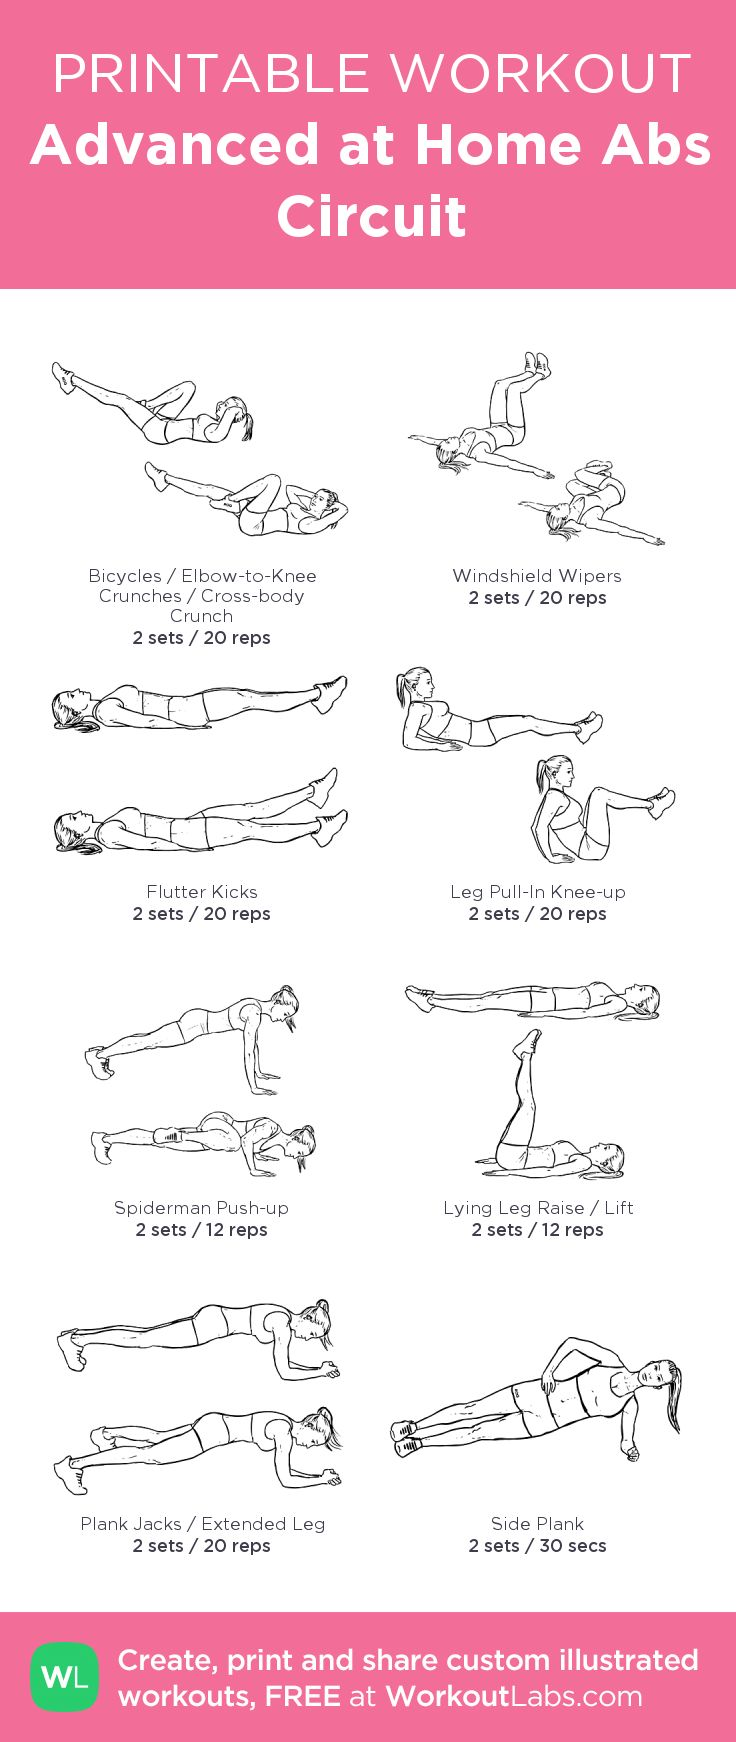 Best 25 ab circuit ideas on pinterest ab circuit for Advanced home